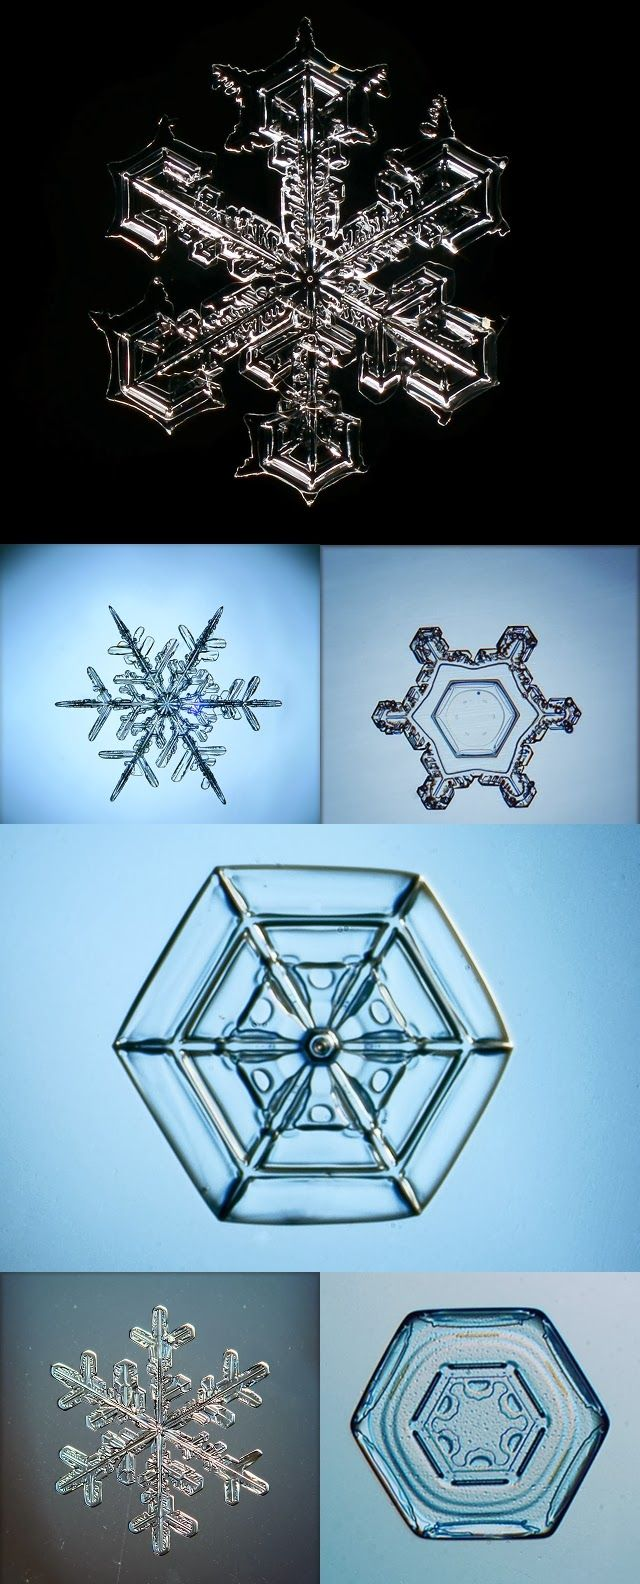 Macro snowflake photos by Sergey Kichigin